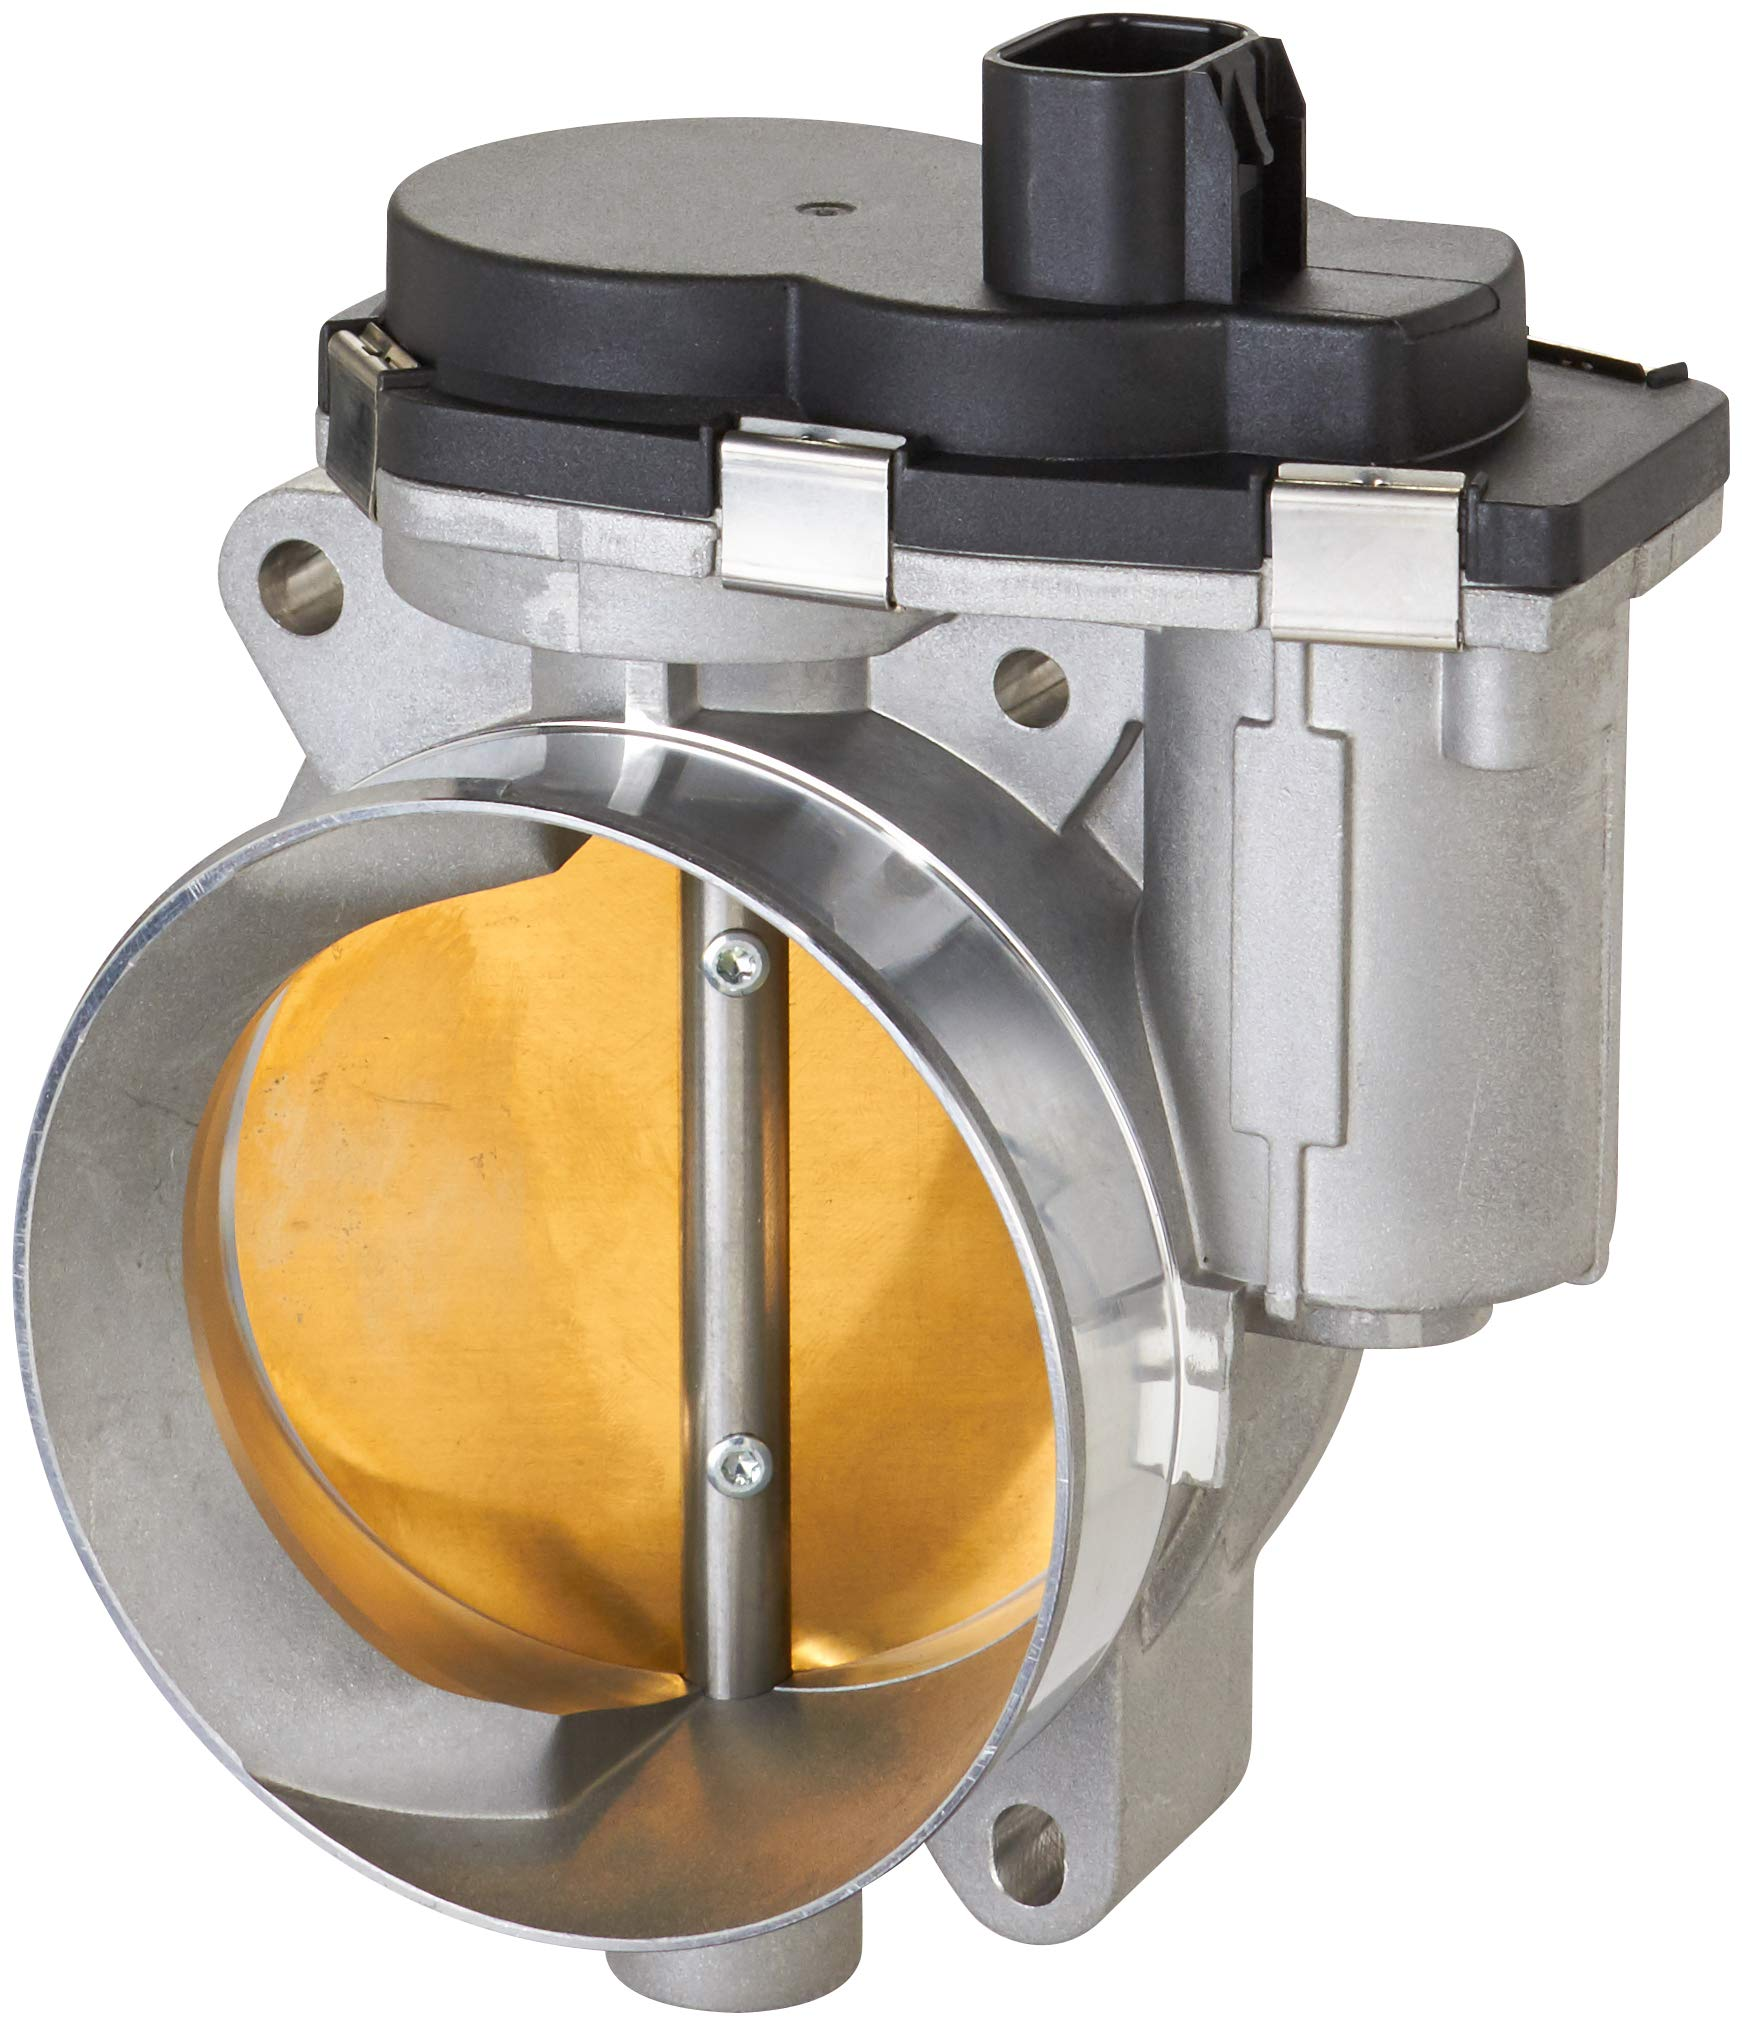 Spectra Premium TB1011 Fuel Injection Throttle Body Assembly by Spectra Premium